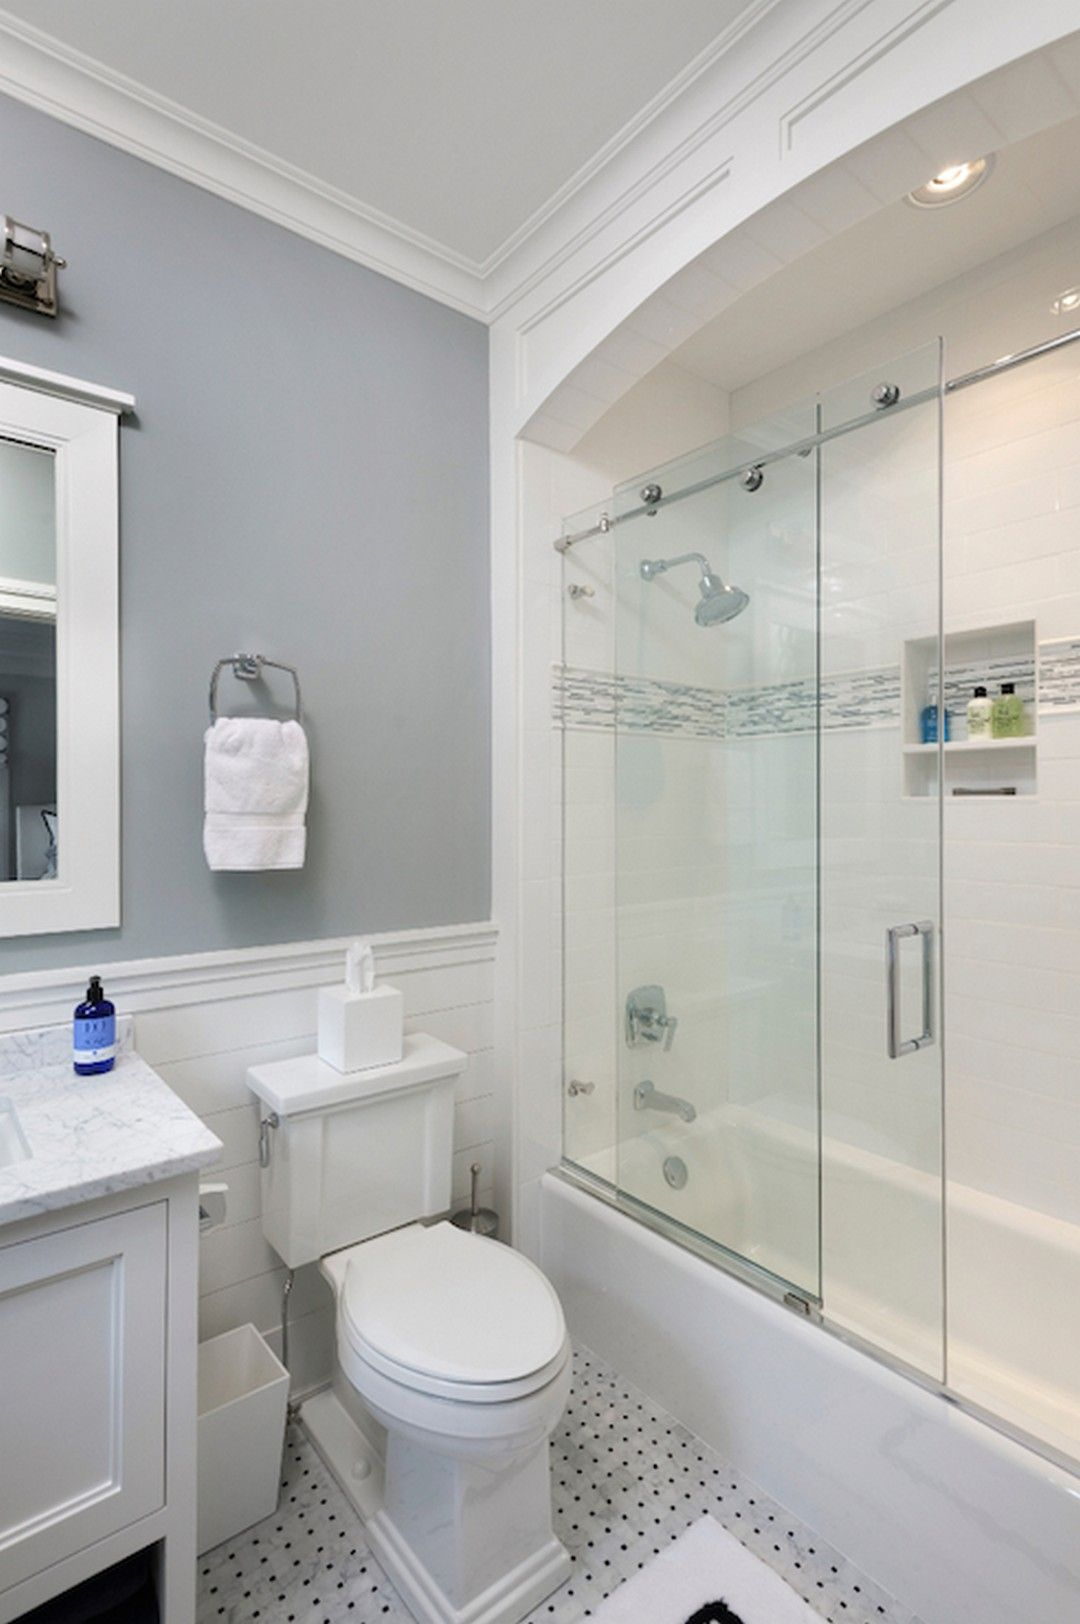 Best of Small Bathroom Remodel Ideas for Your Home | Cabinets ...